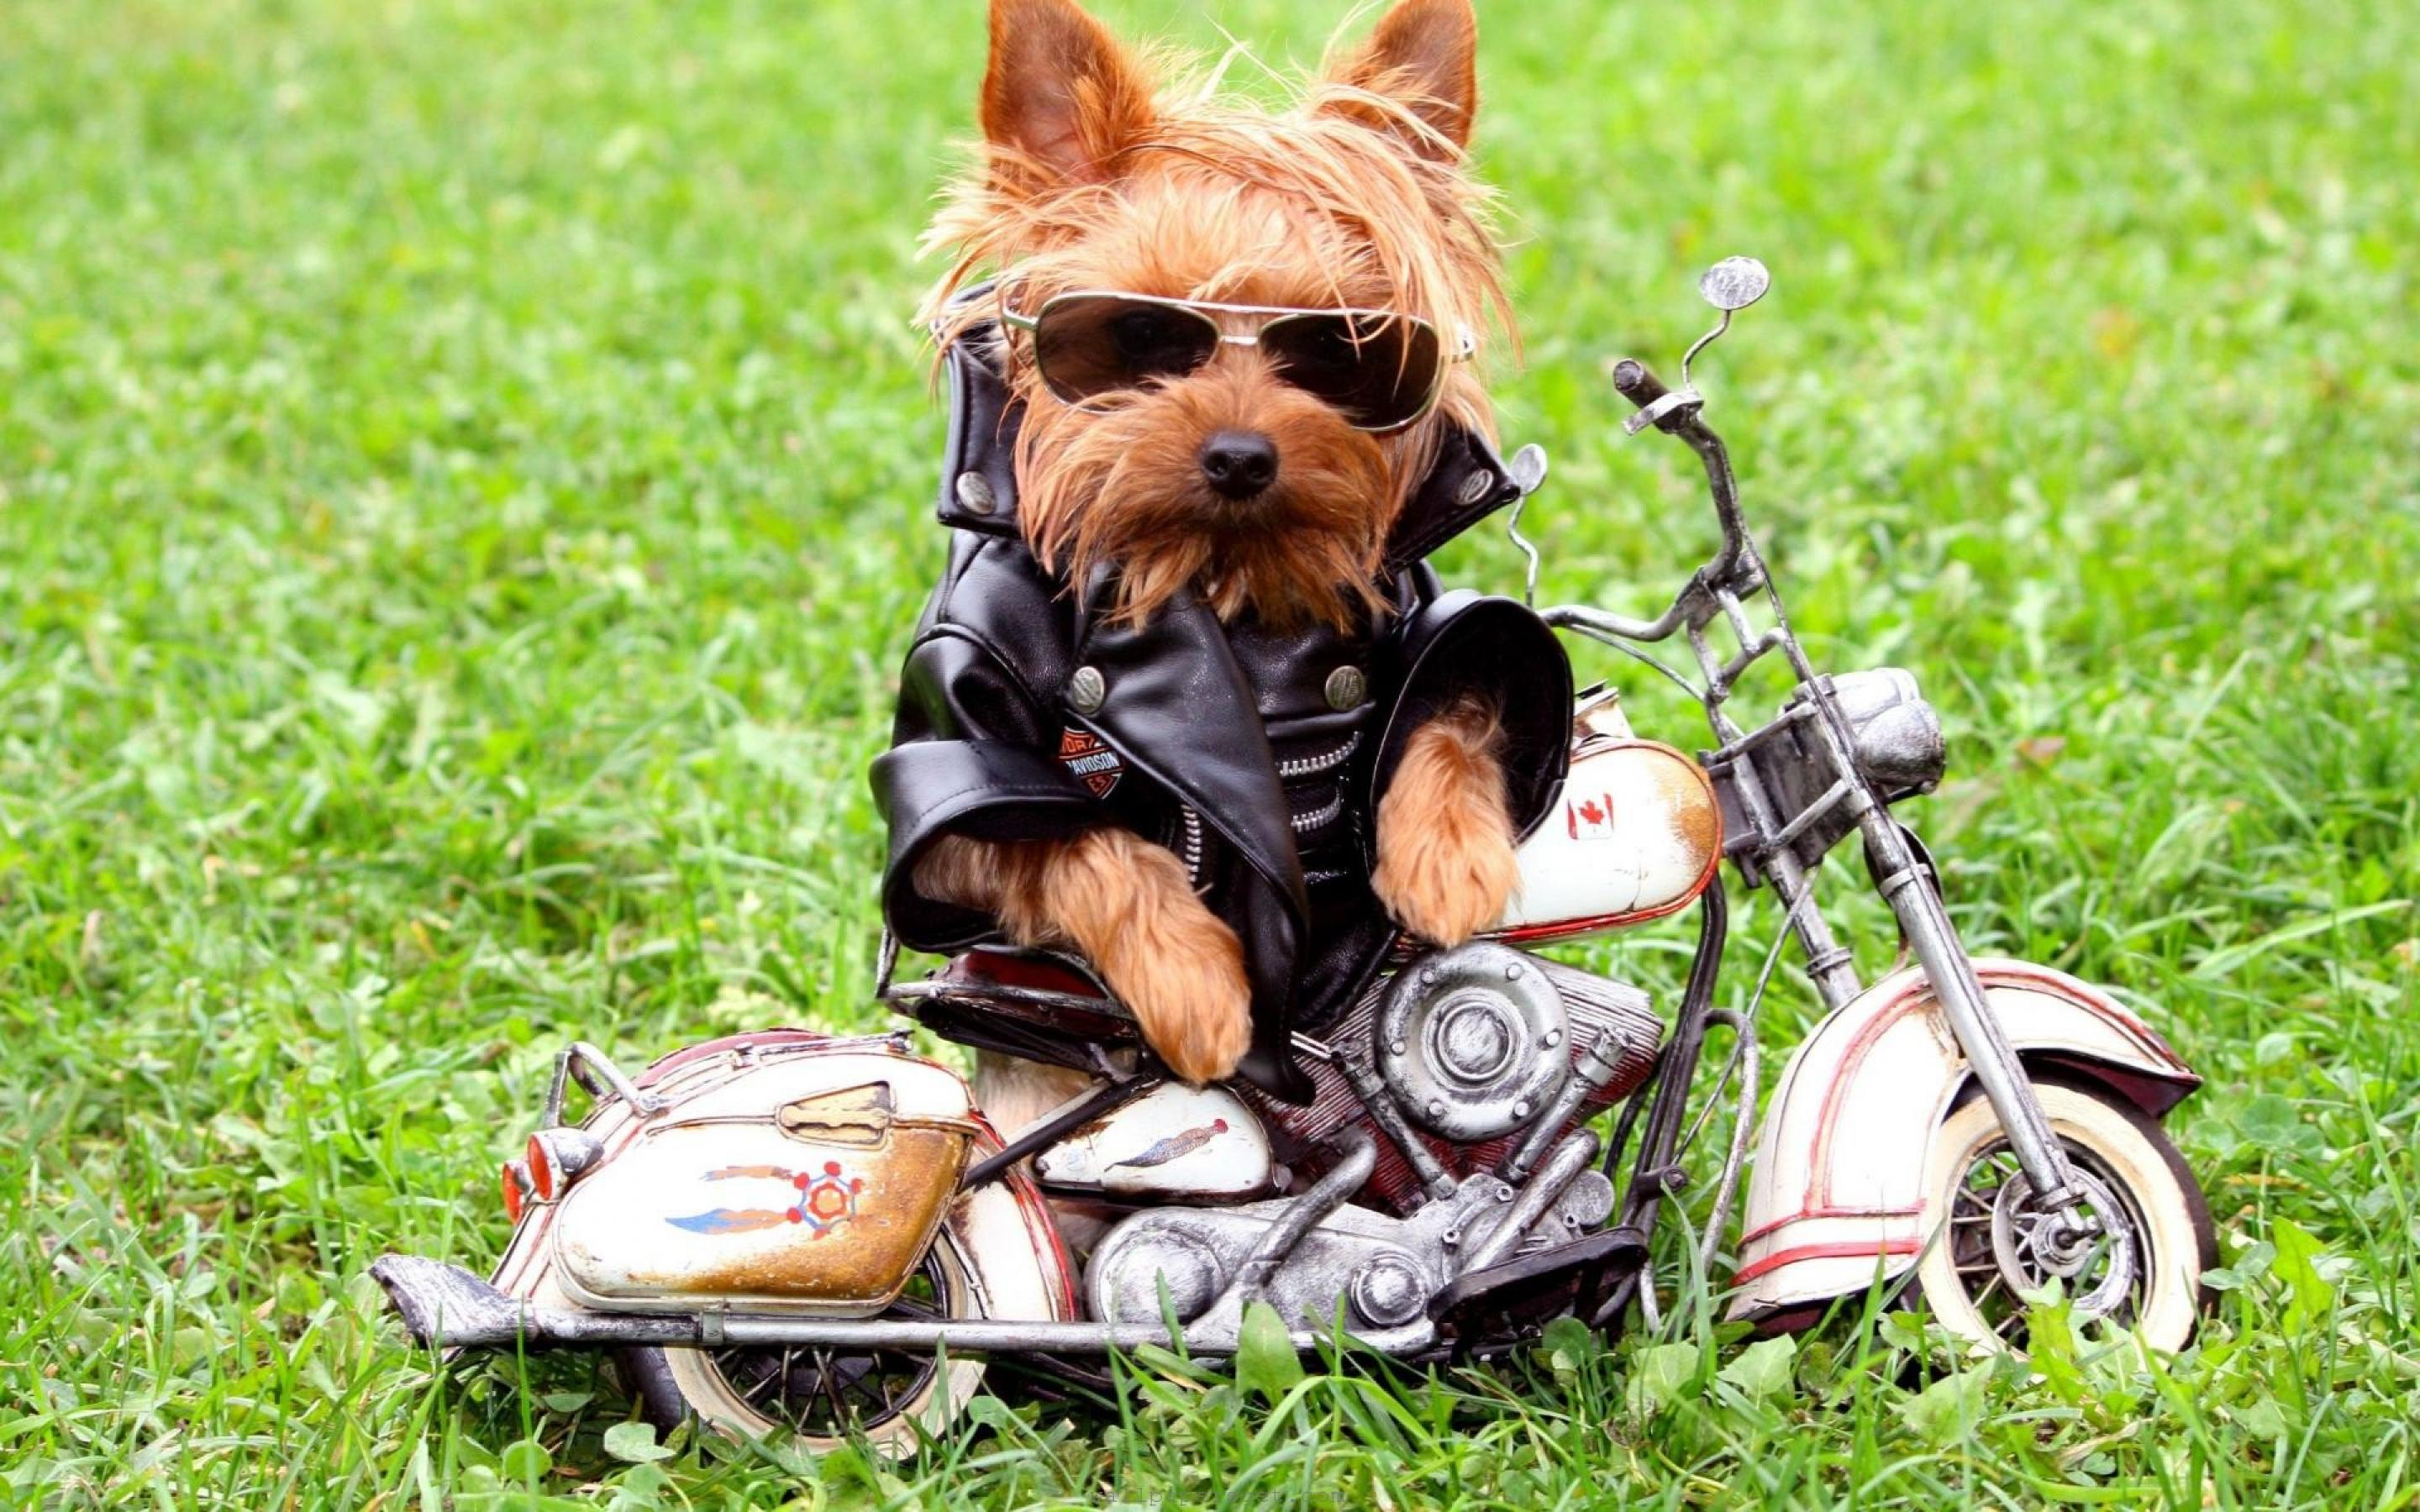 Biker Dog Wallpaper PC Computer